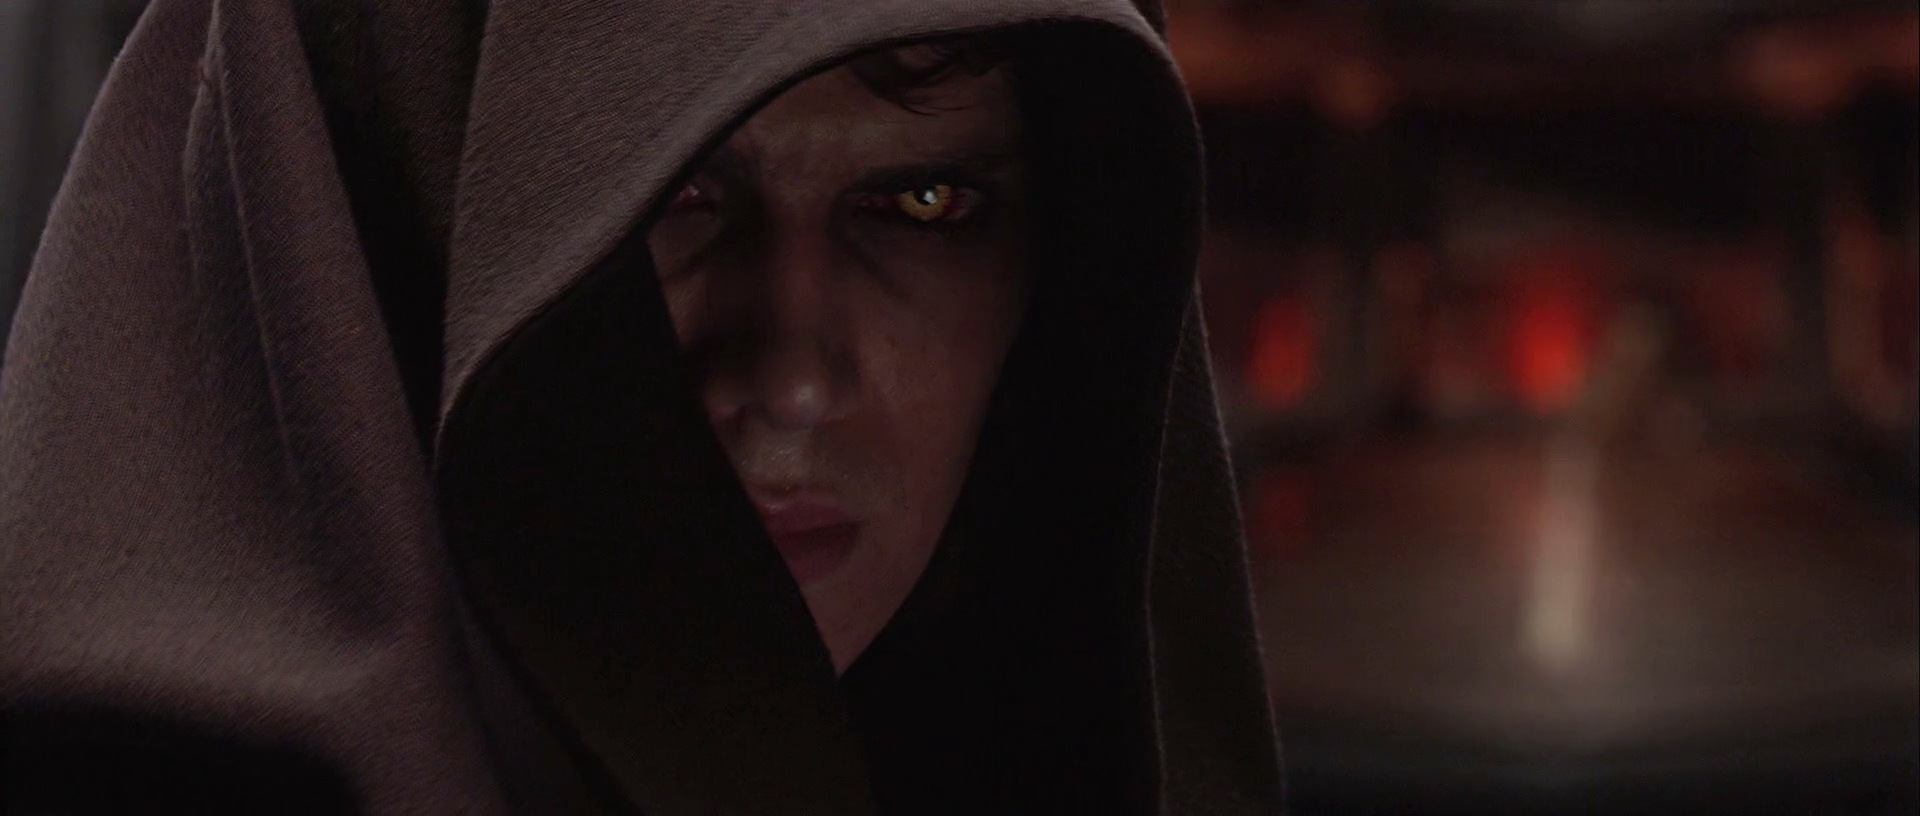 Image result for Anakin sith eyes